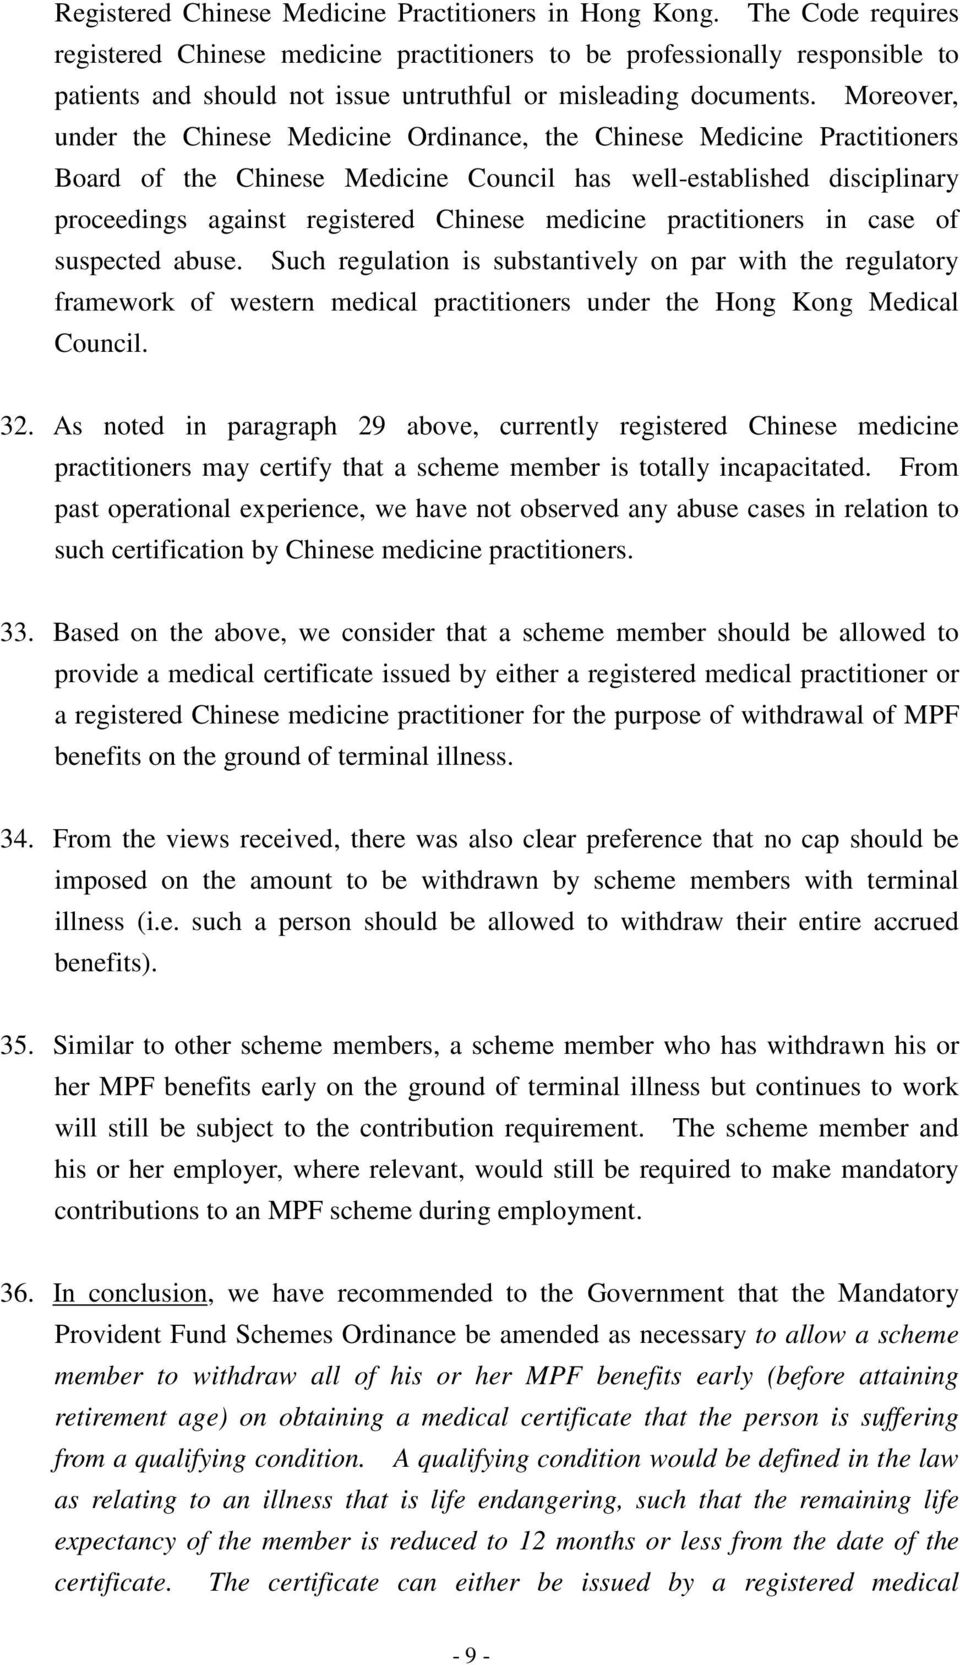 Moreover, under the Chinese Medicine Ordinance, the Chinese Medicine Practitioners Board of the Chinese Medicine Council has well-established disciplinary proceedings against registered Chinese